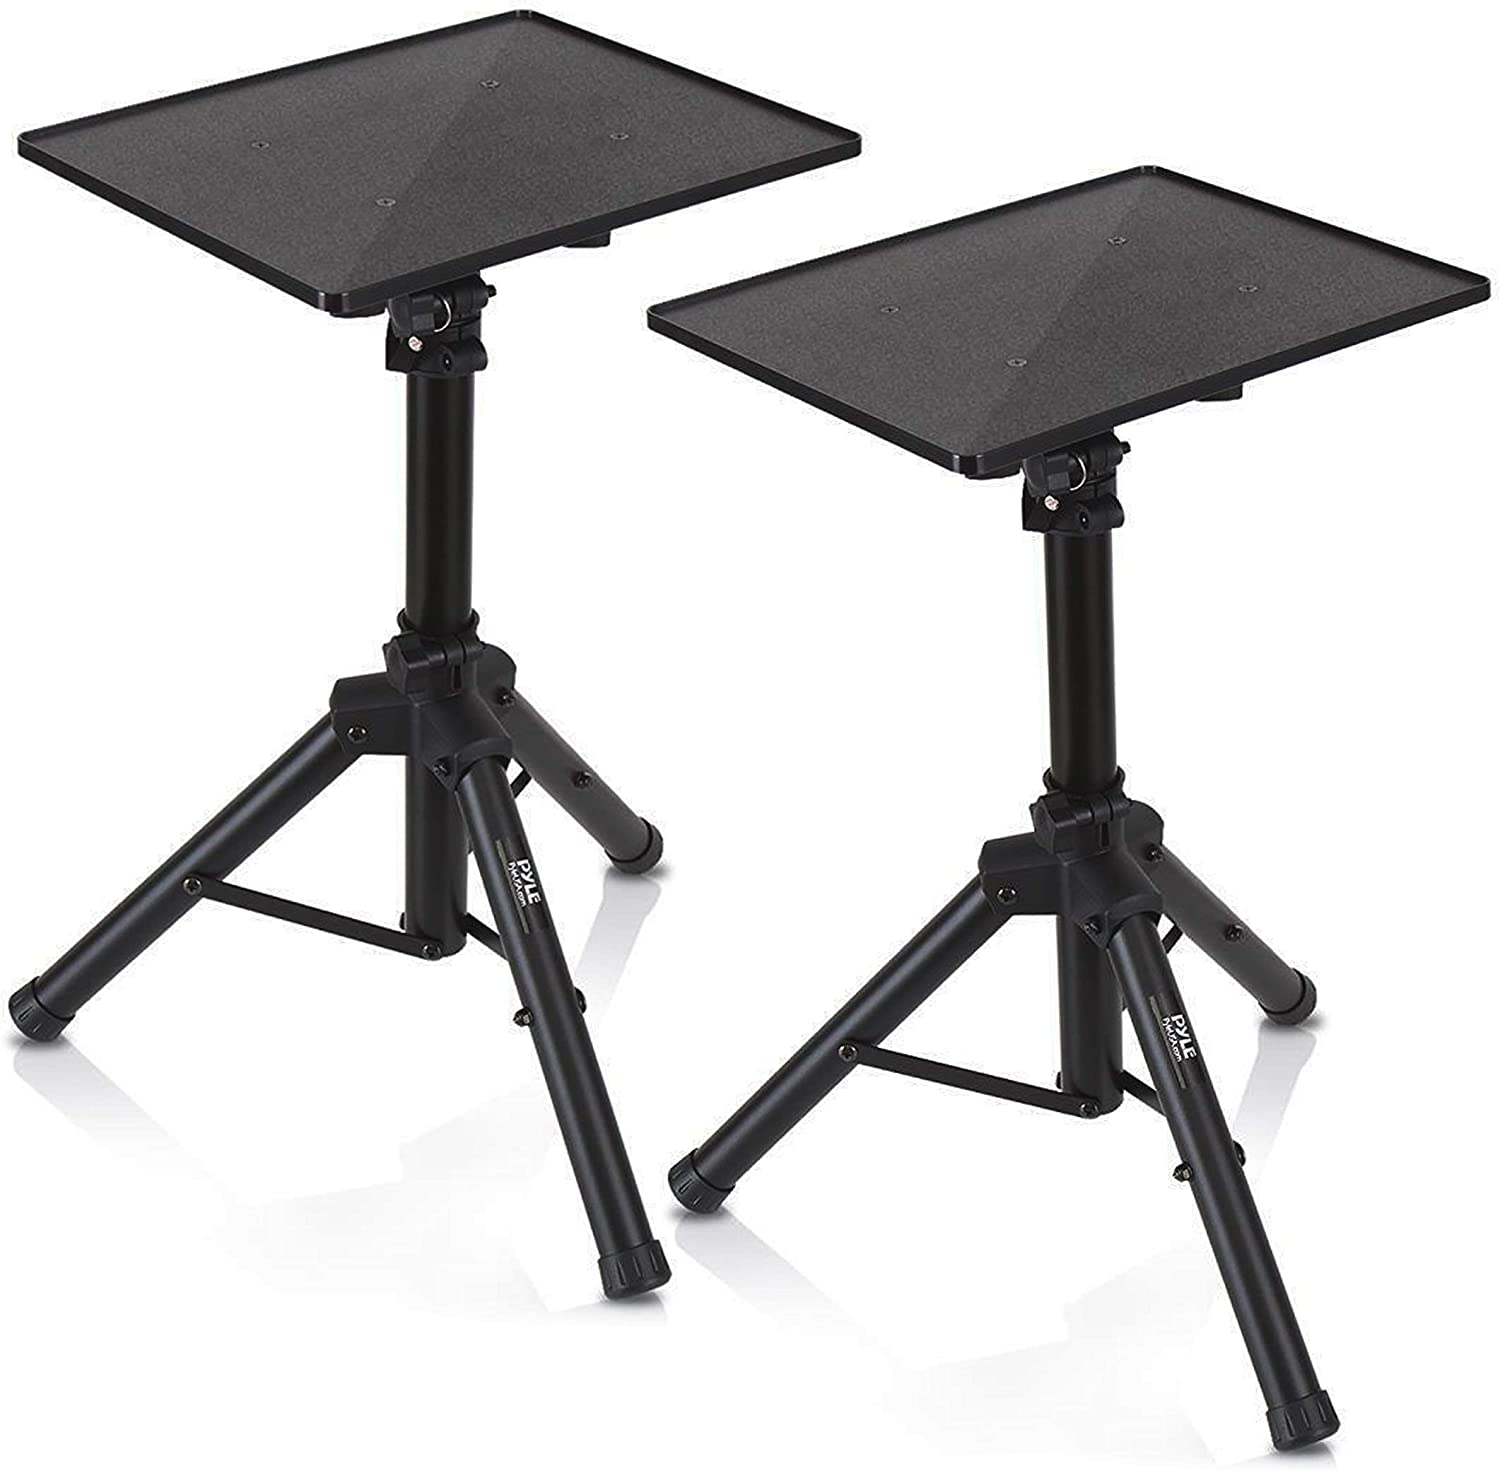 Universal Laptop Projector Tripod Stand - 2 Pcs Computer, Book, DJ Equipment Holder Mount Height Adjustable Up to 52 Inches w/ 20'' x 16'' Plate Size - Perfect for Stage or Studio Use - Pyle PLPTS4X2